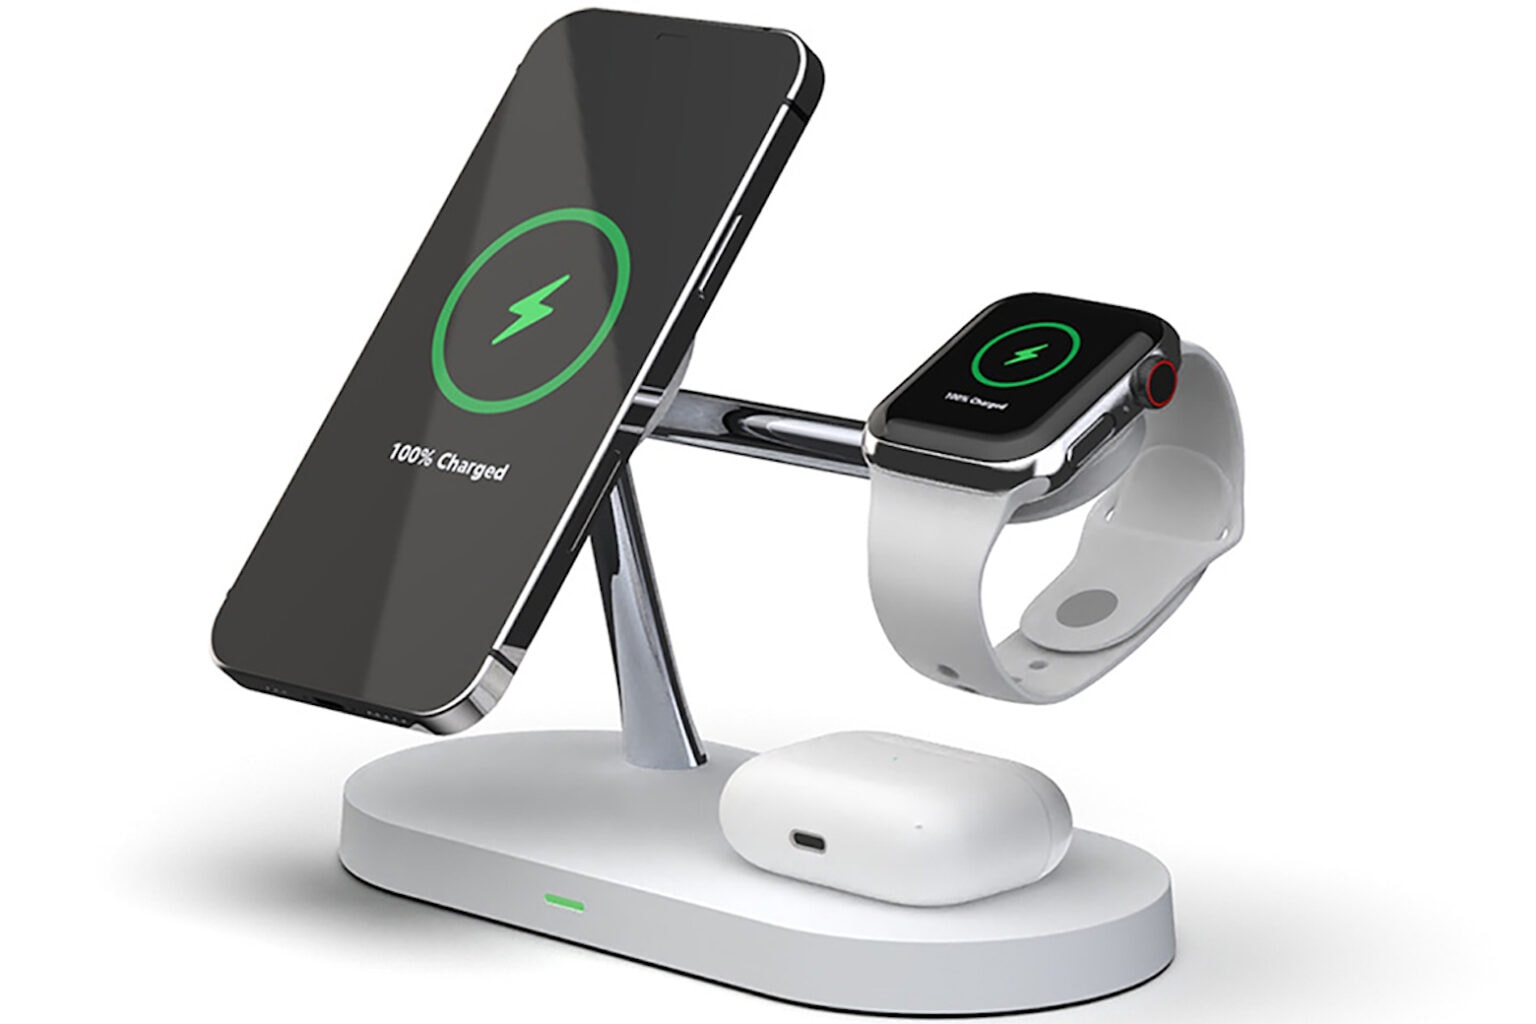 Cut the cords and just use this MagSafe wireless charging hub.